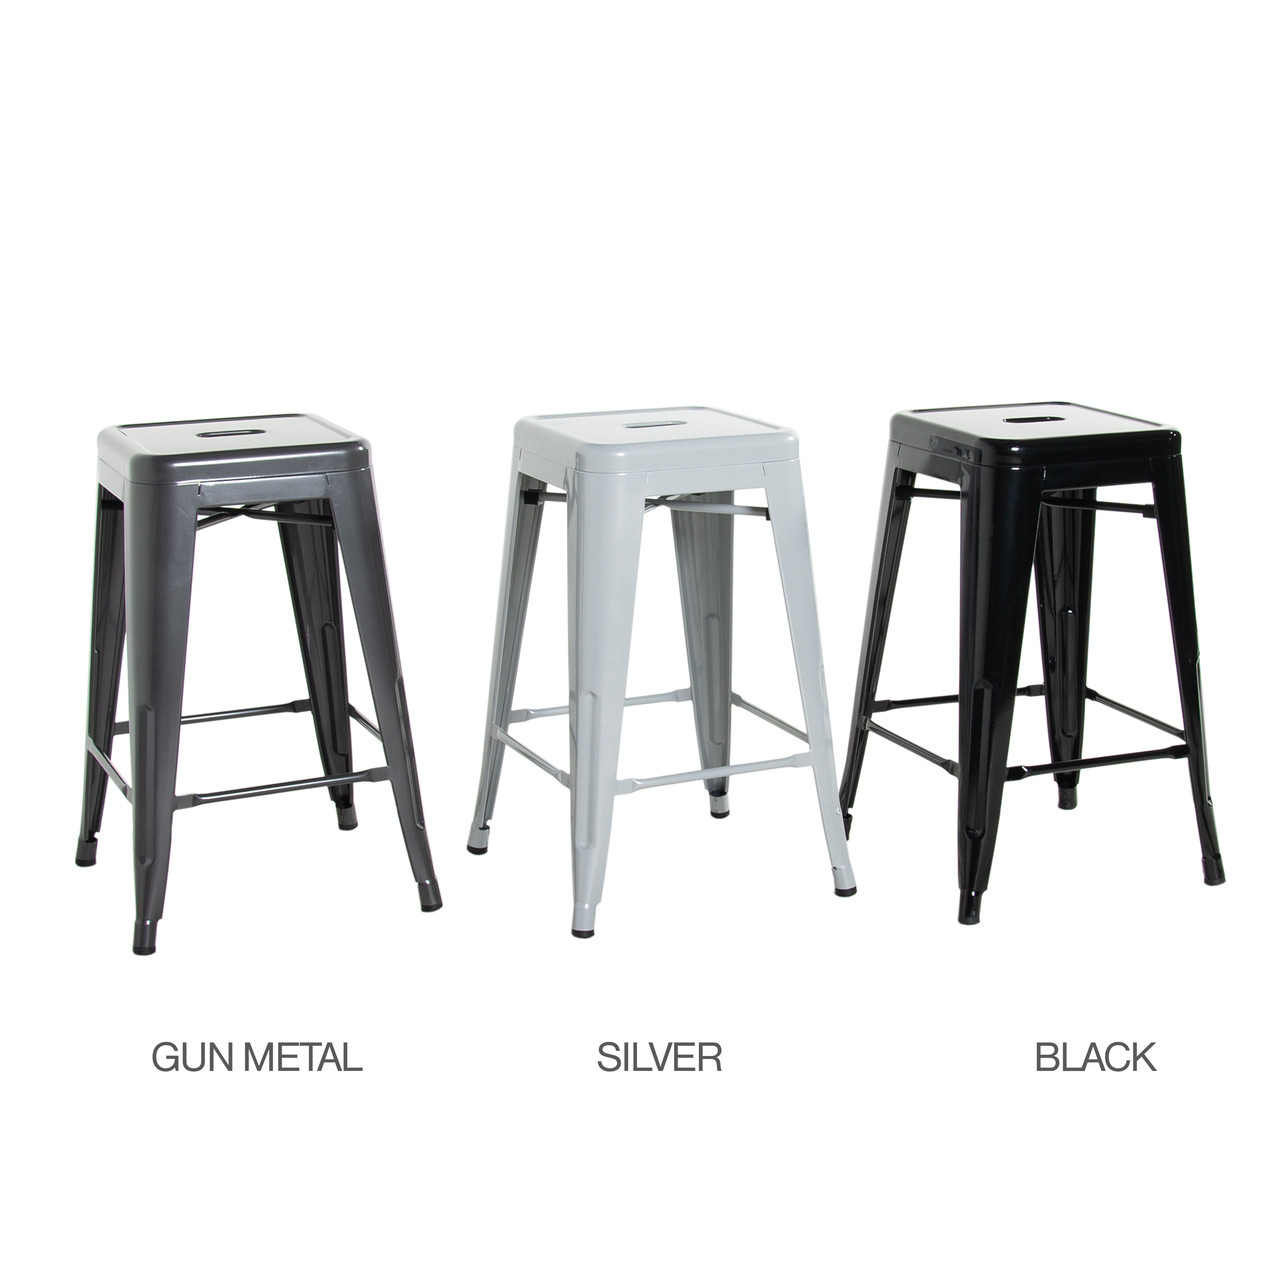 Admirable Cap Living Set Of 4 Stackable 24 Inches Sturdy Square Seat Metal Bar Stools Colors Available In Glossy Black Silver Or Dark Gunmetal Machost Co Dining Chair Design Ideas Machostcouk